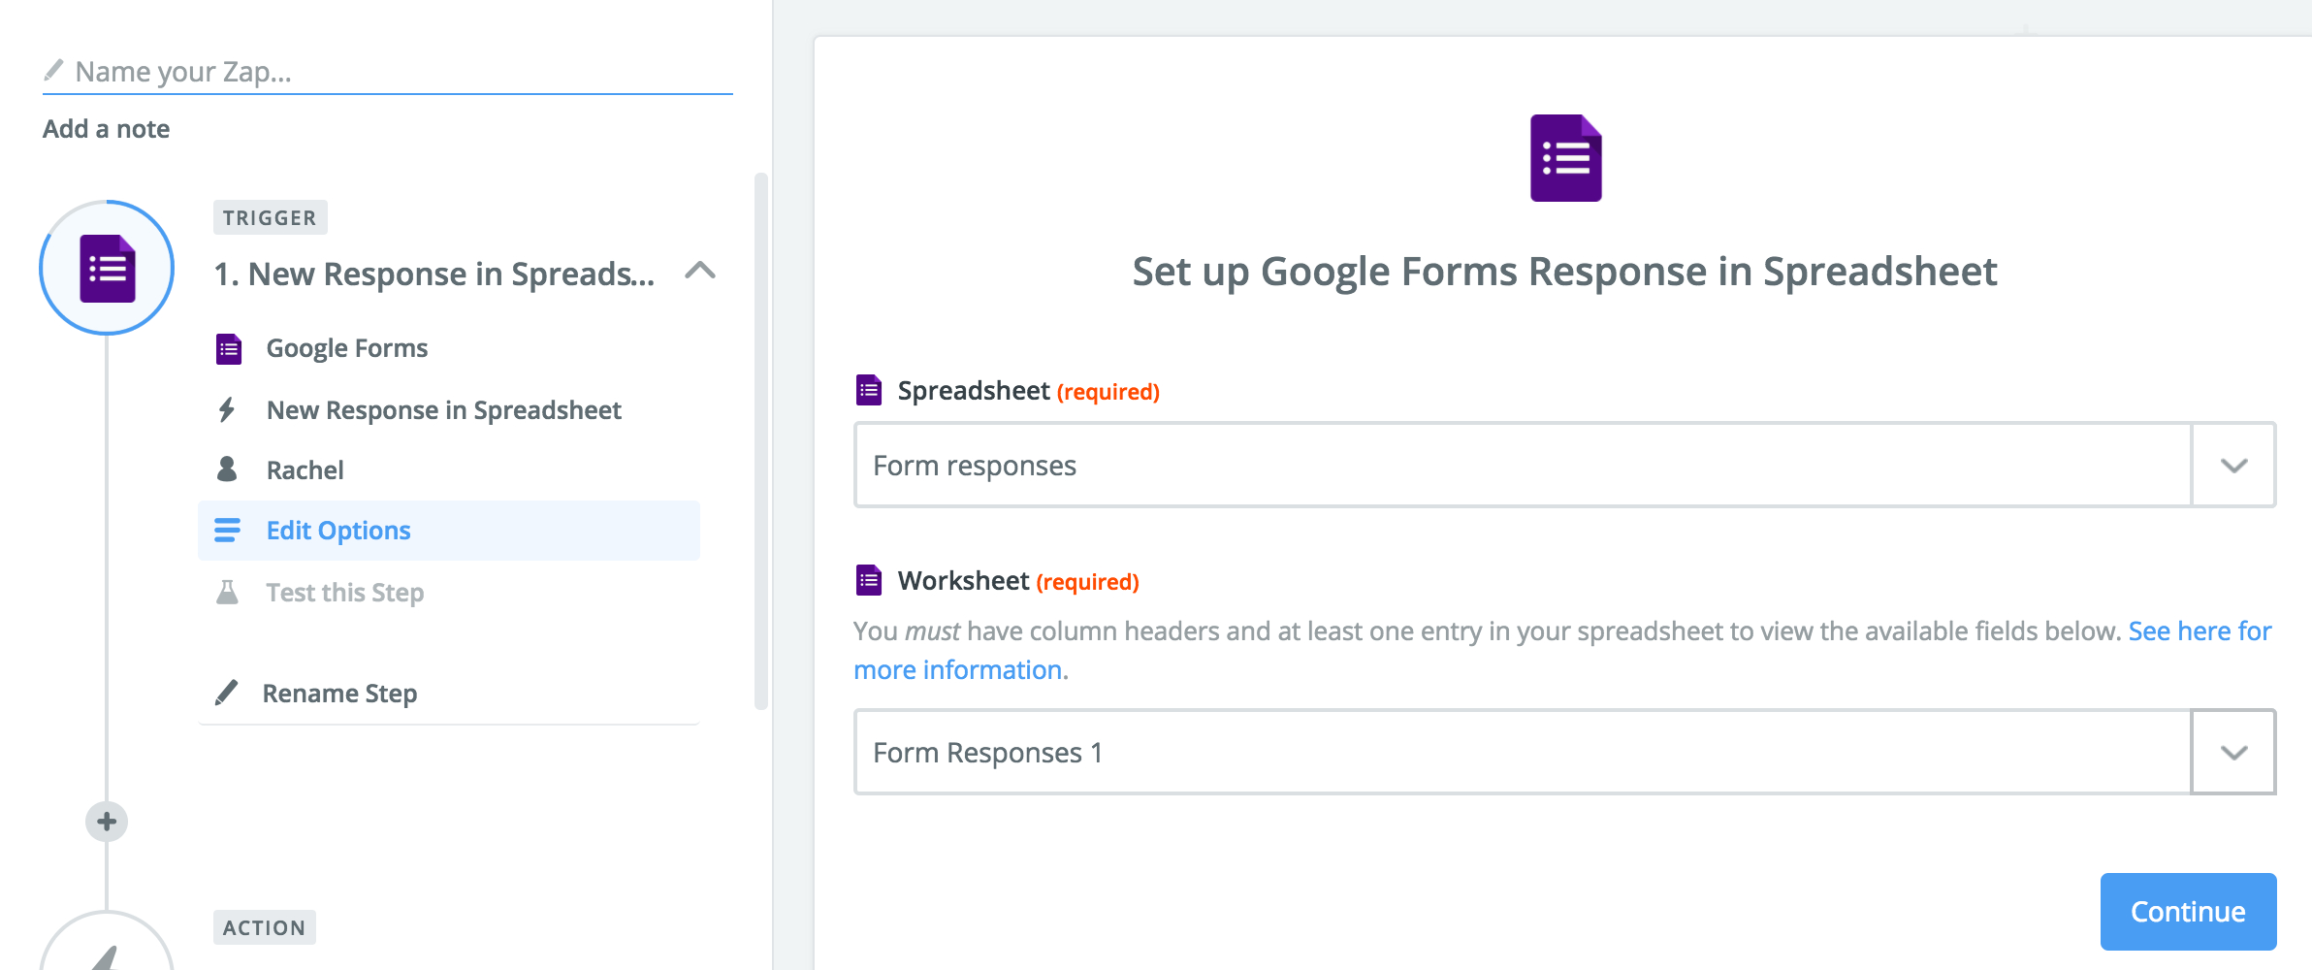 Forms Google Com Spreadsheet For How To Create A Google Form To Create A Lead In Copper – Copper